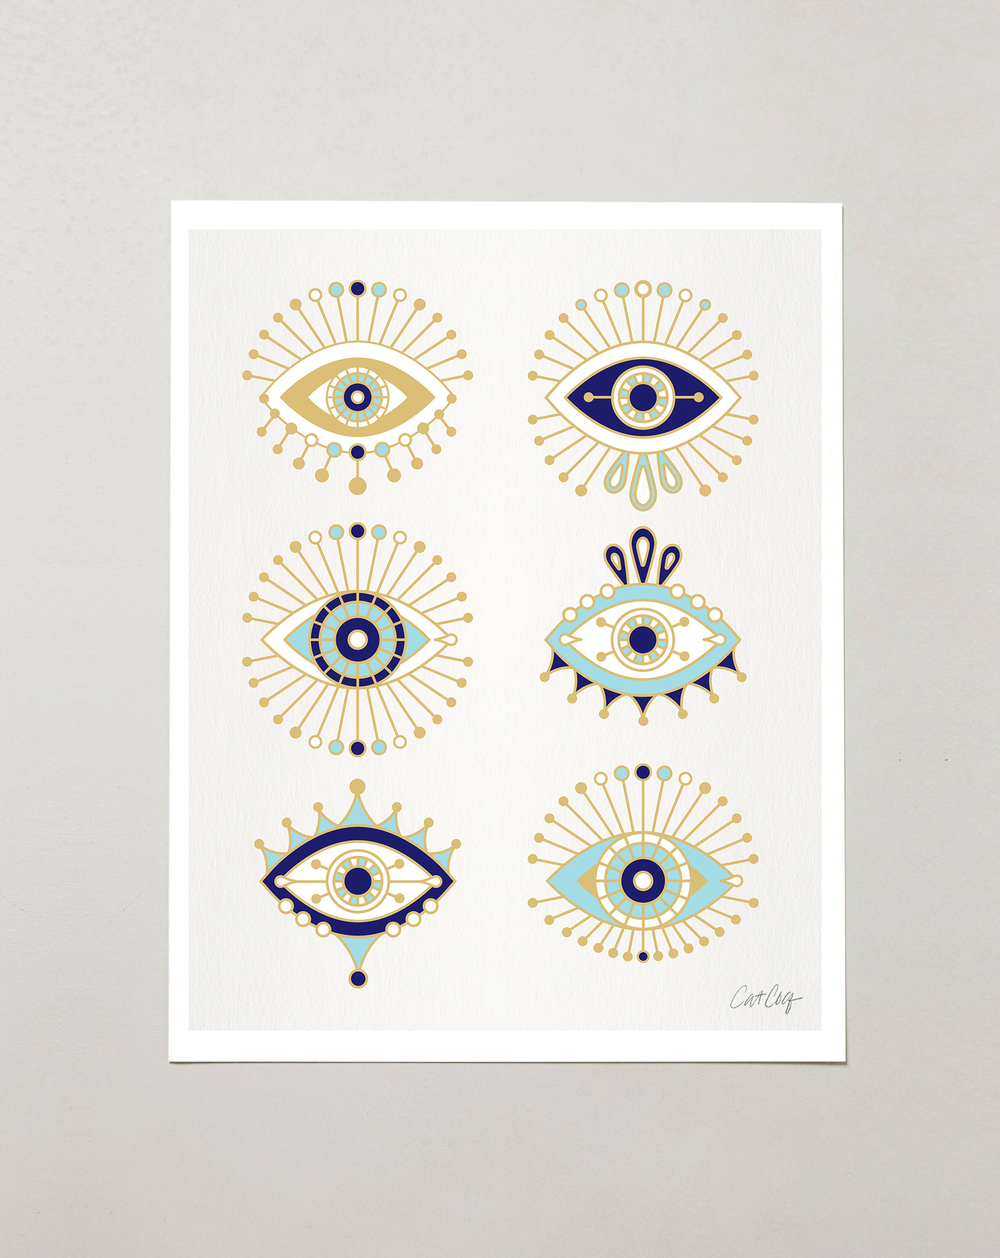 White Evil Eye Collection art prints available  here .